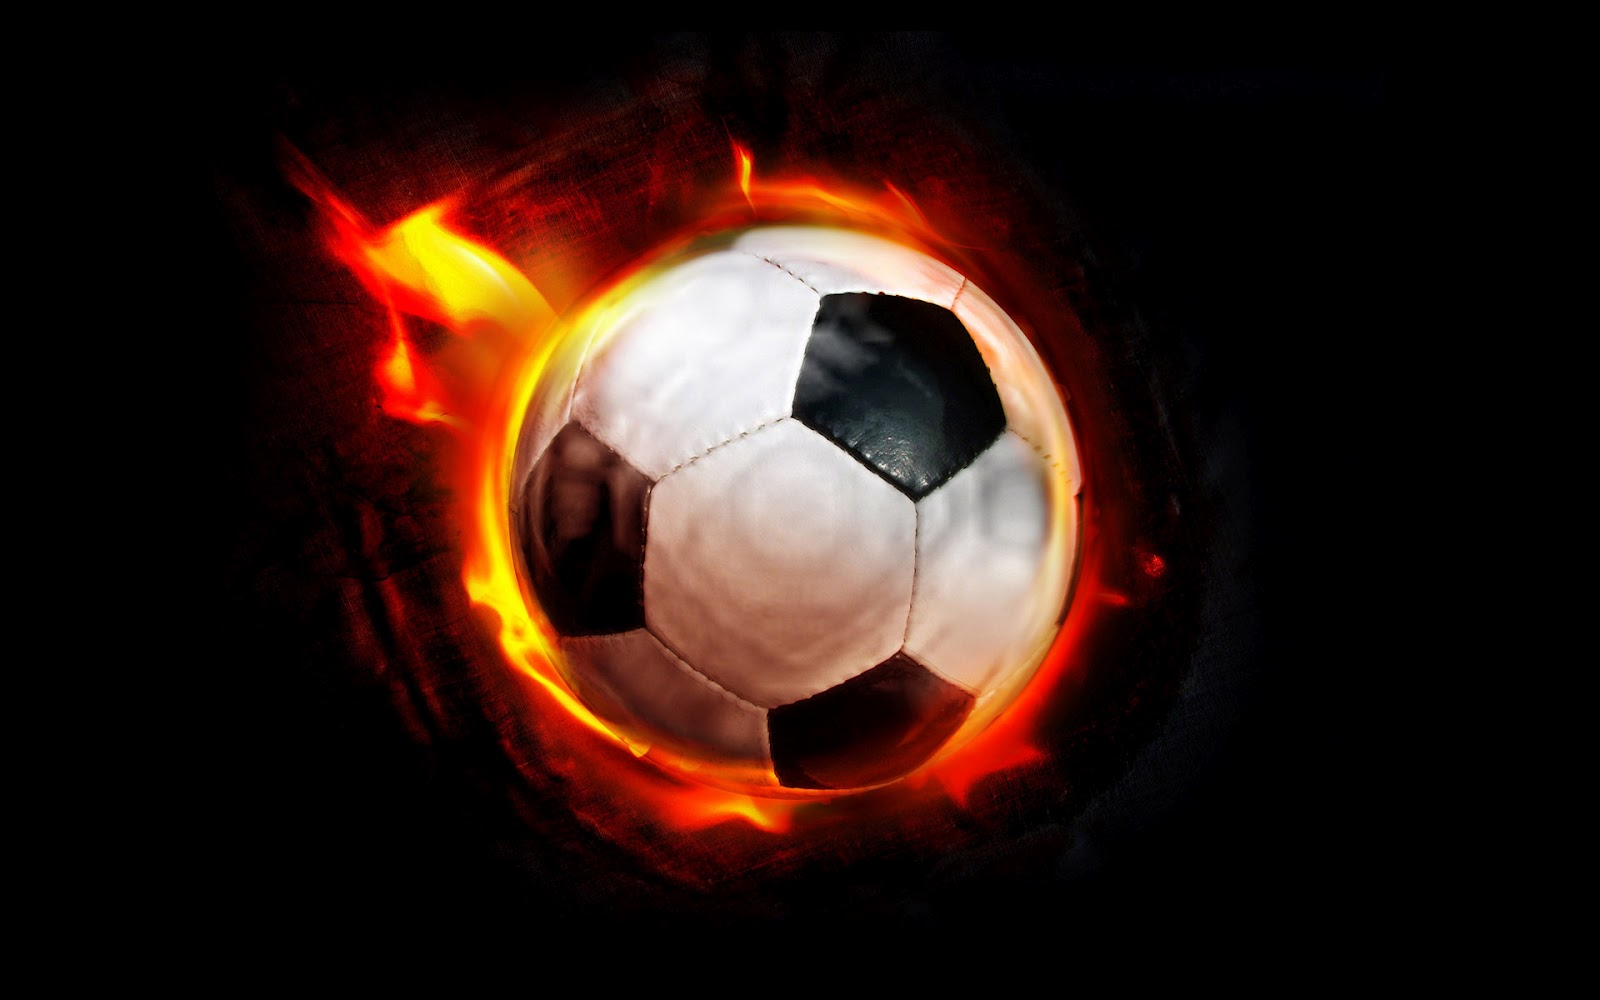 life with the soccer fire wallpaper Light up your desktop background 1600x1000